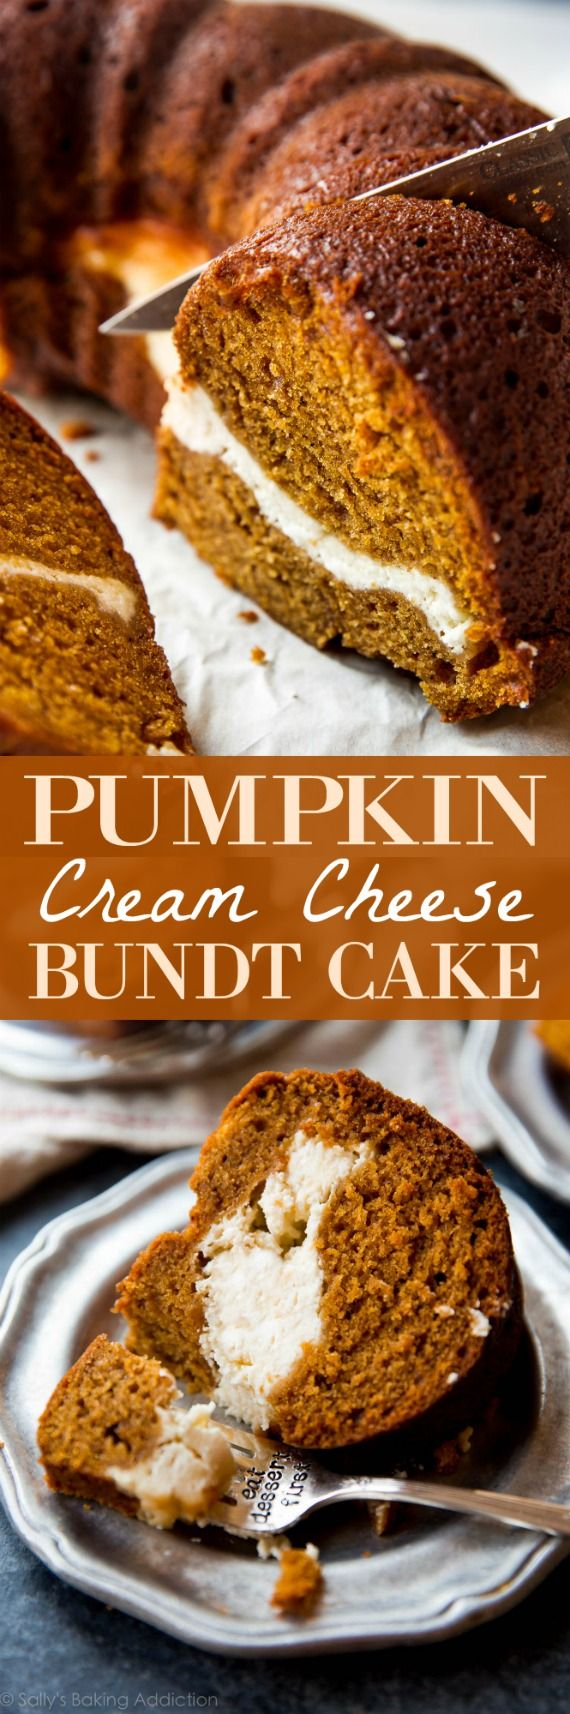 You have to try this pumpkin cream cheese bundt cake recipe! Both layers are irresistible and it's so easy! Recipe on sallysbakingaddiction.com